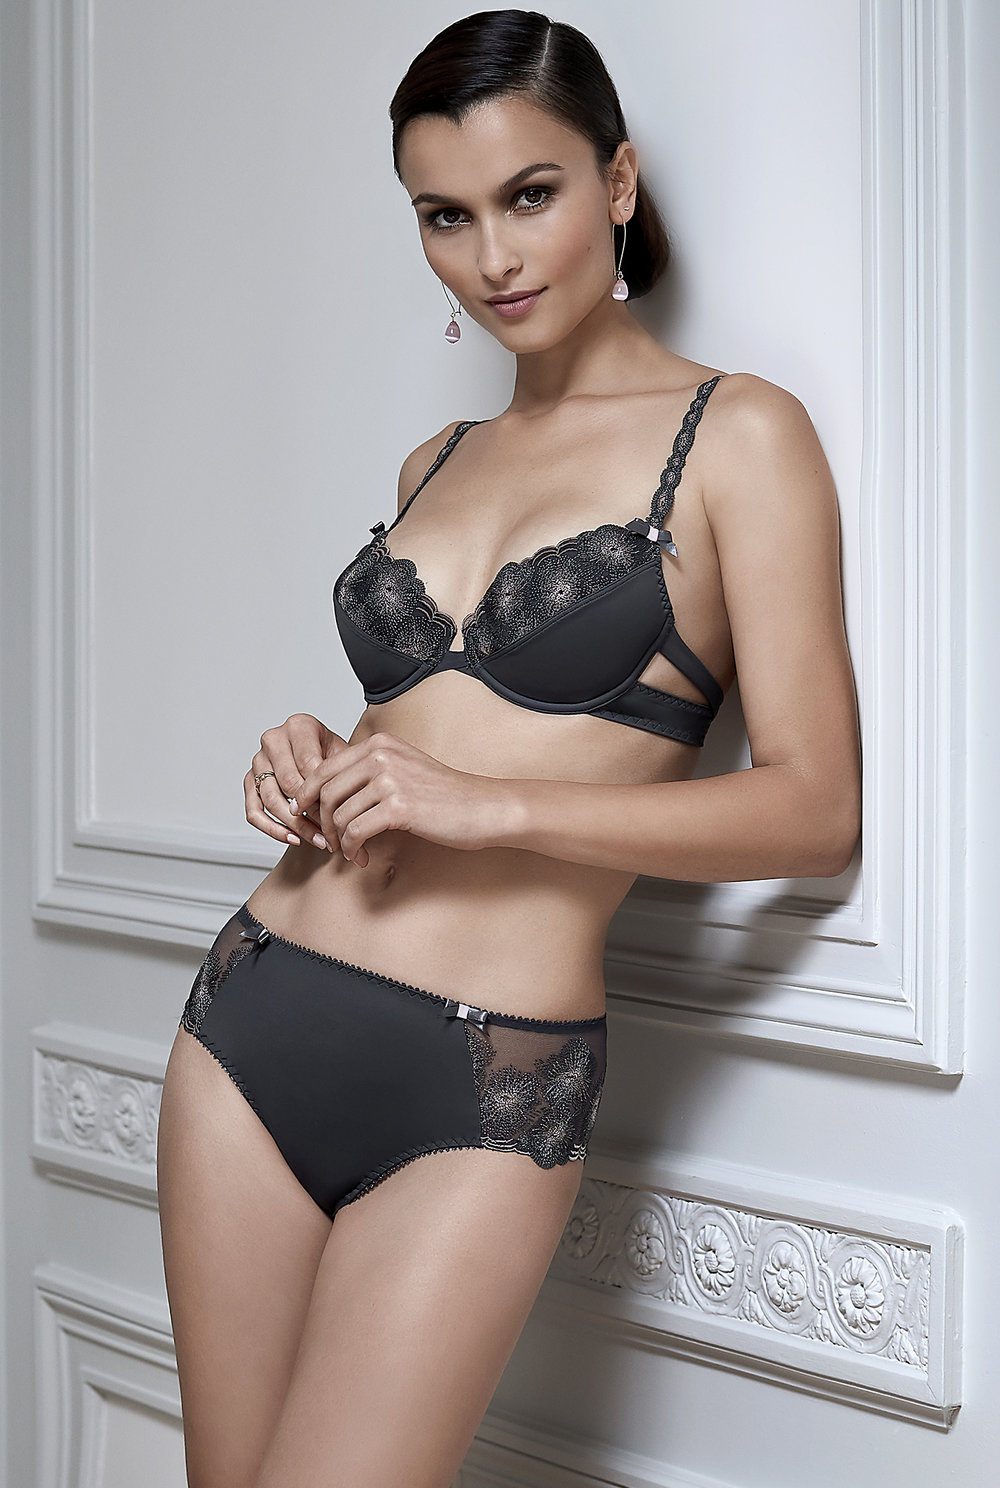 Divin'Elle   push-up amplimousse, sizes 85 to 90 a ; 85 to 95 b, c : $86  Shorty string, sizes 38 to 46 : $55